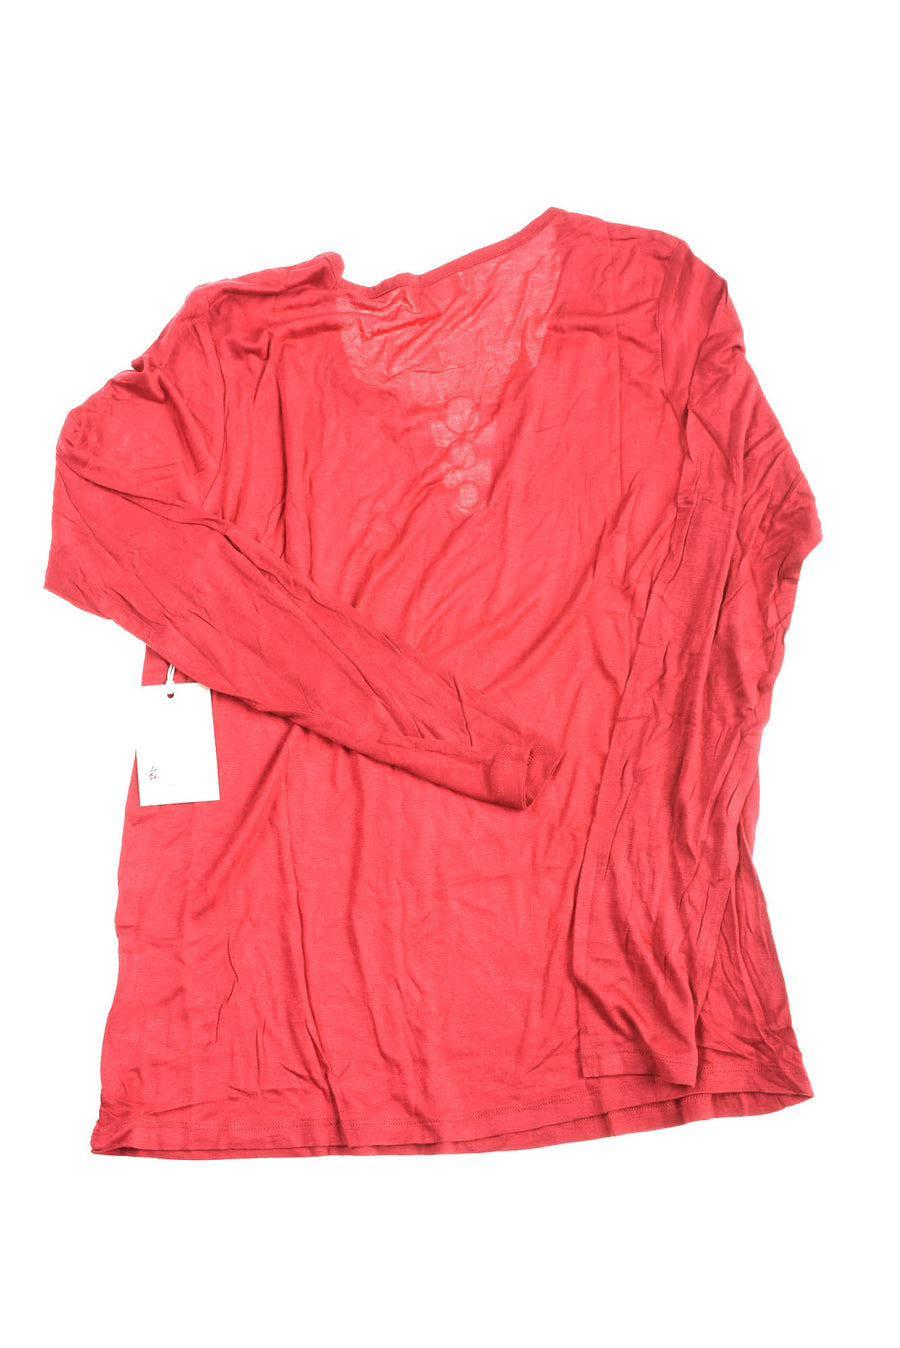 NEW Glitz Women's Top X-Large Red